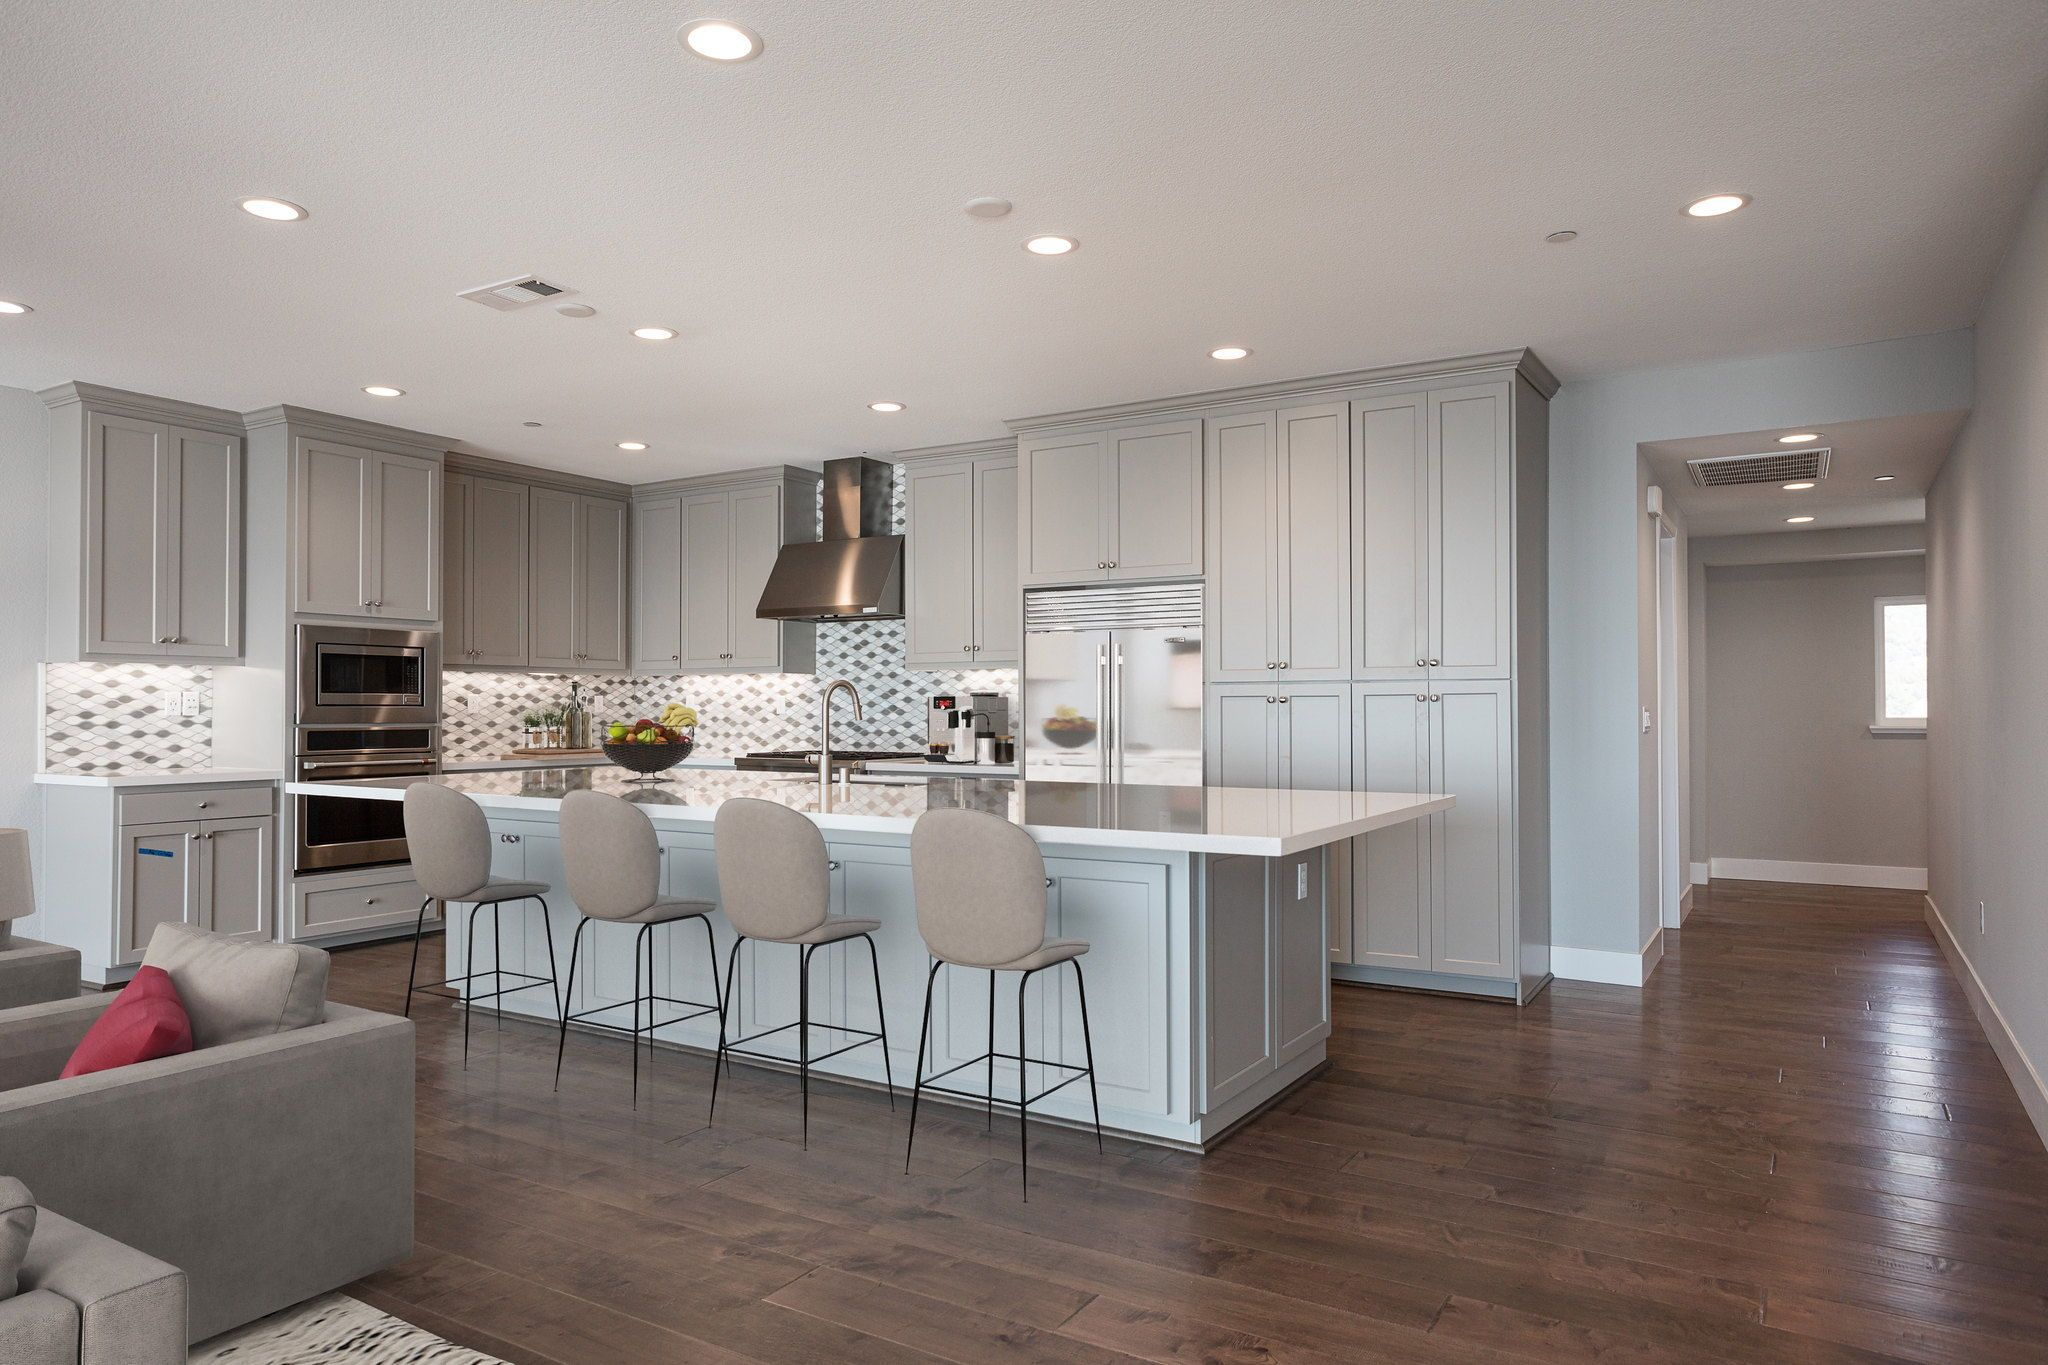 Waterline in Point Richmond, CA by Shea Homes | Residence 4 Kitchen #SheaHomes #SheaHomesNorCal #SheaHomeowners #SheaNorCal #LiveTheSheaDifference #NorCalHomes #NorCalRealEstate #BayAreaRealEstate #BayAreaNewHomes #HomeDesignInspiration #HomeInspiration #Waterline #PointRichmond Sales: Shea Homes Marketing Company (CalDRE #01378646); Construction: Shea Homes Limited Partnership (CSLB #855368). Equal Housing Opportunity.